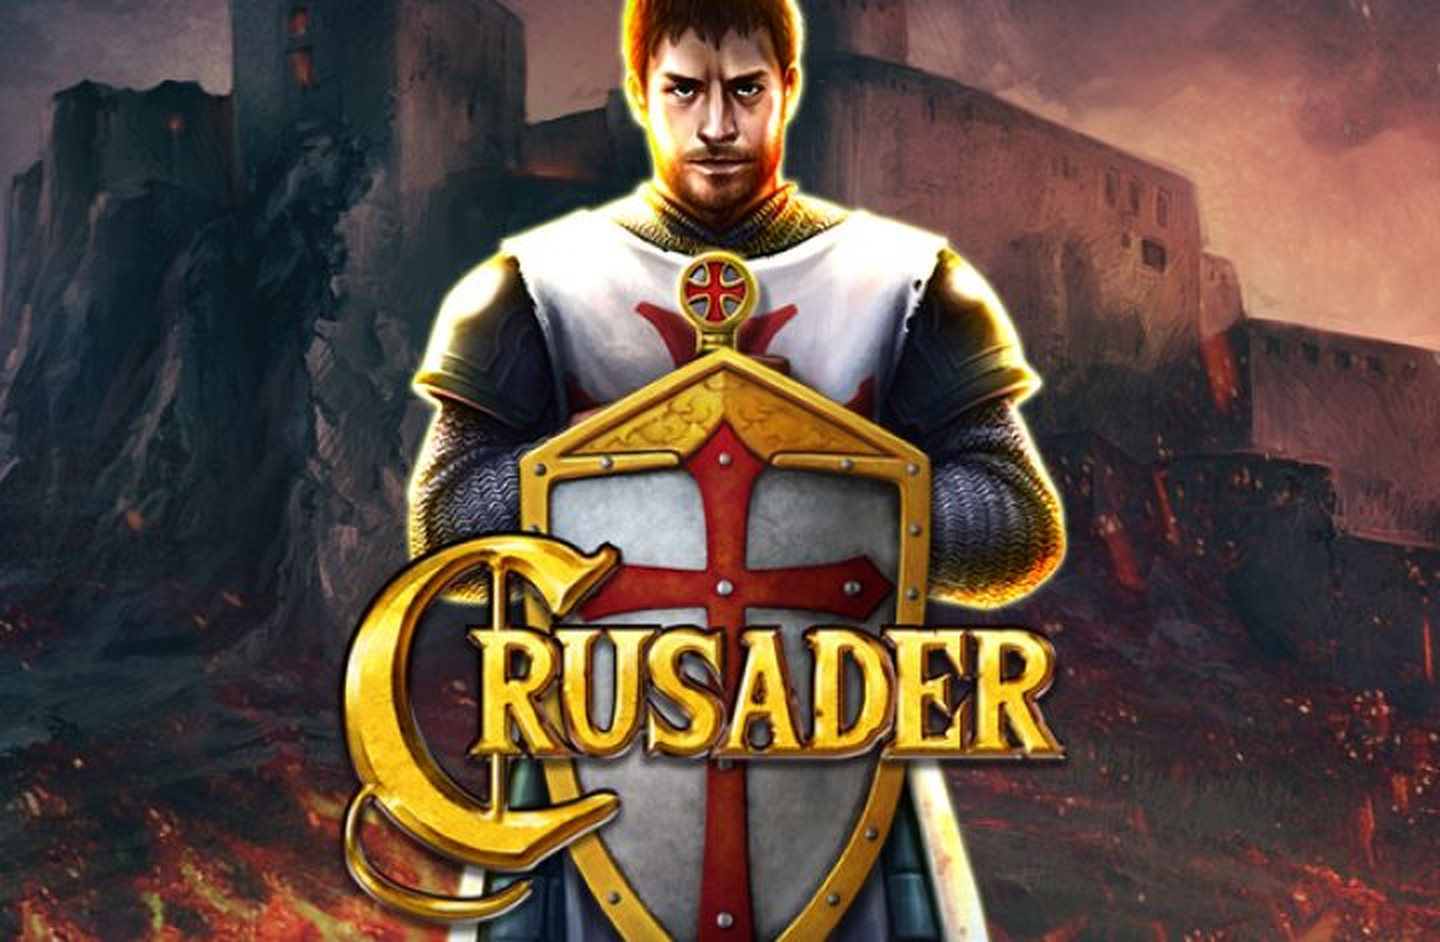 The Crusader Online Slot Demo Game by ELK Studios